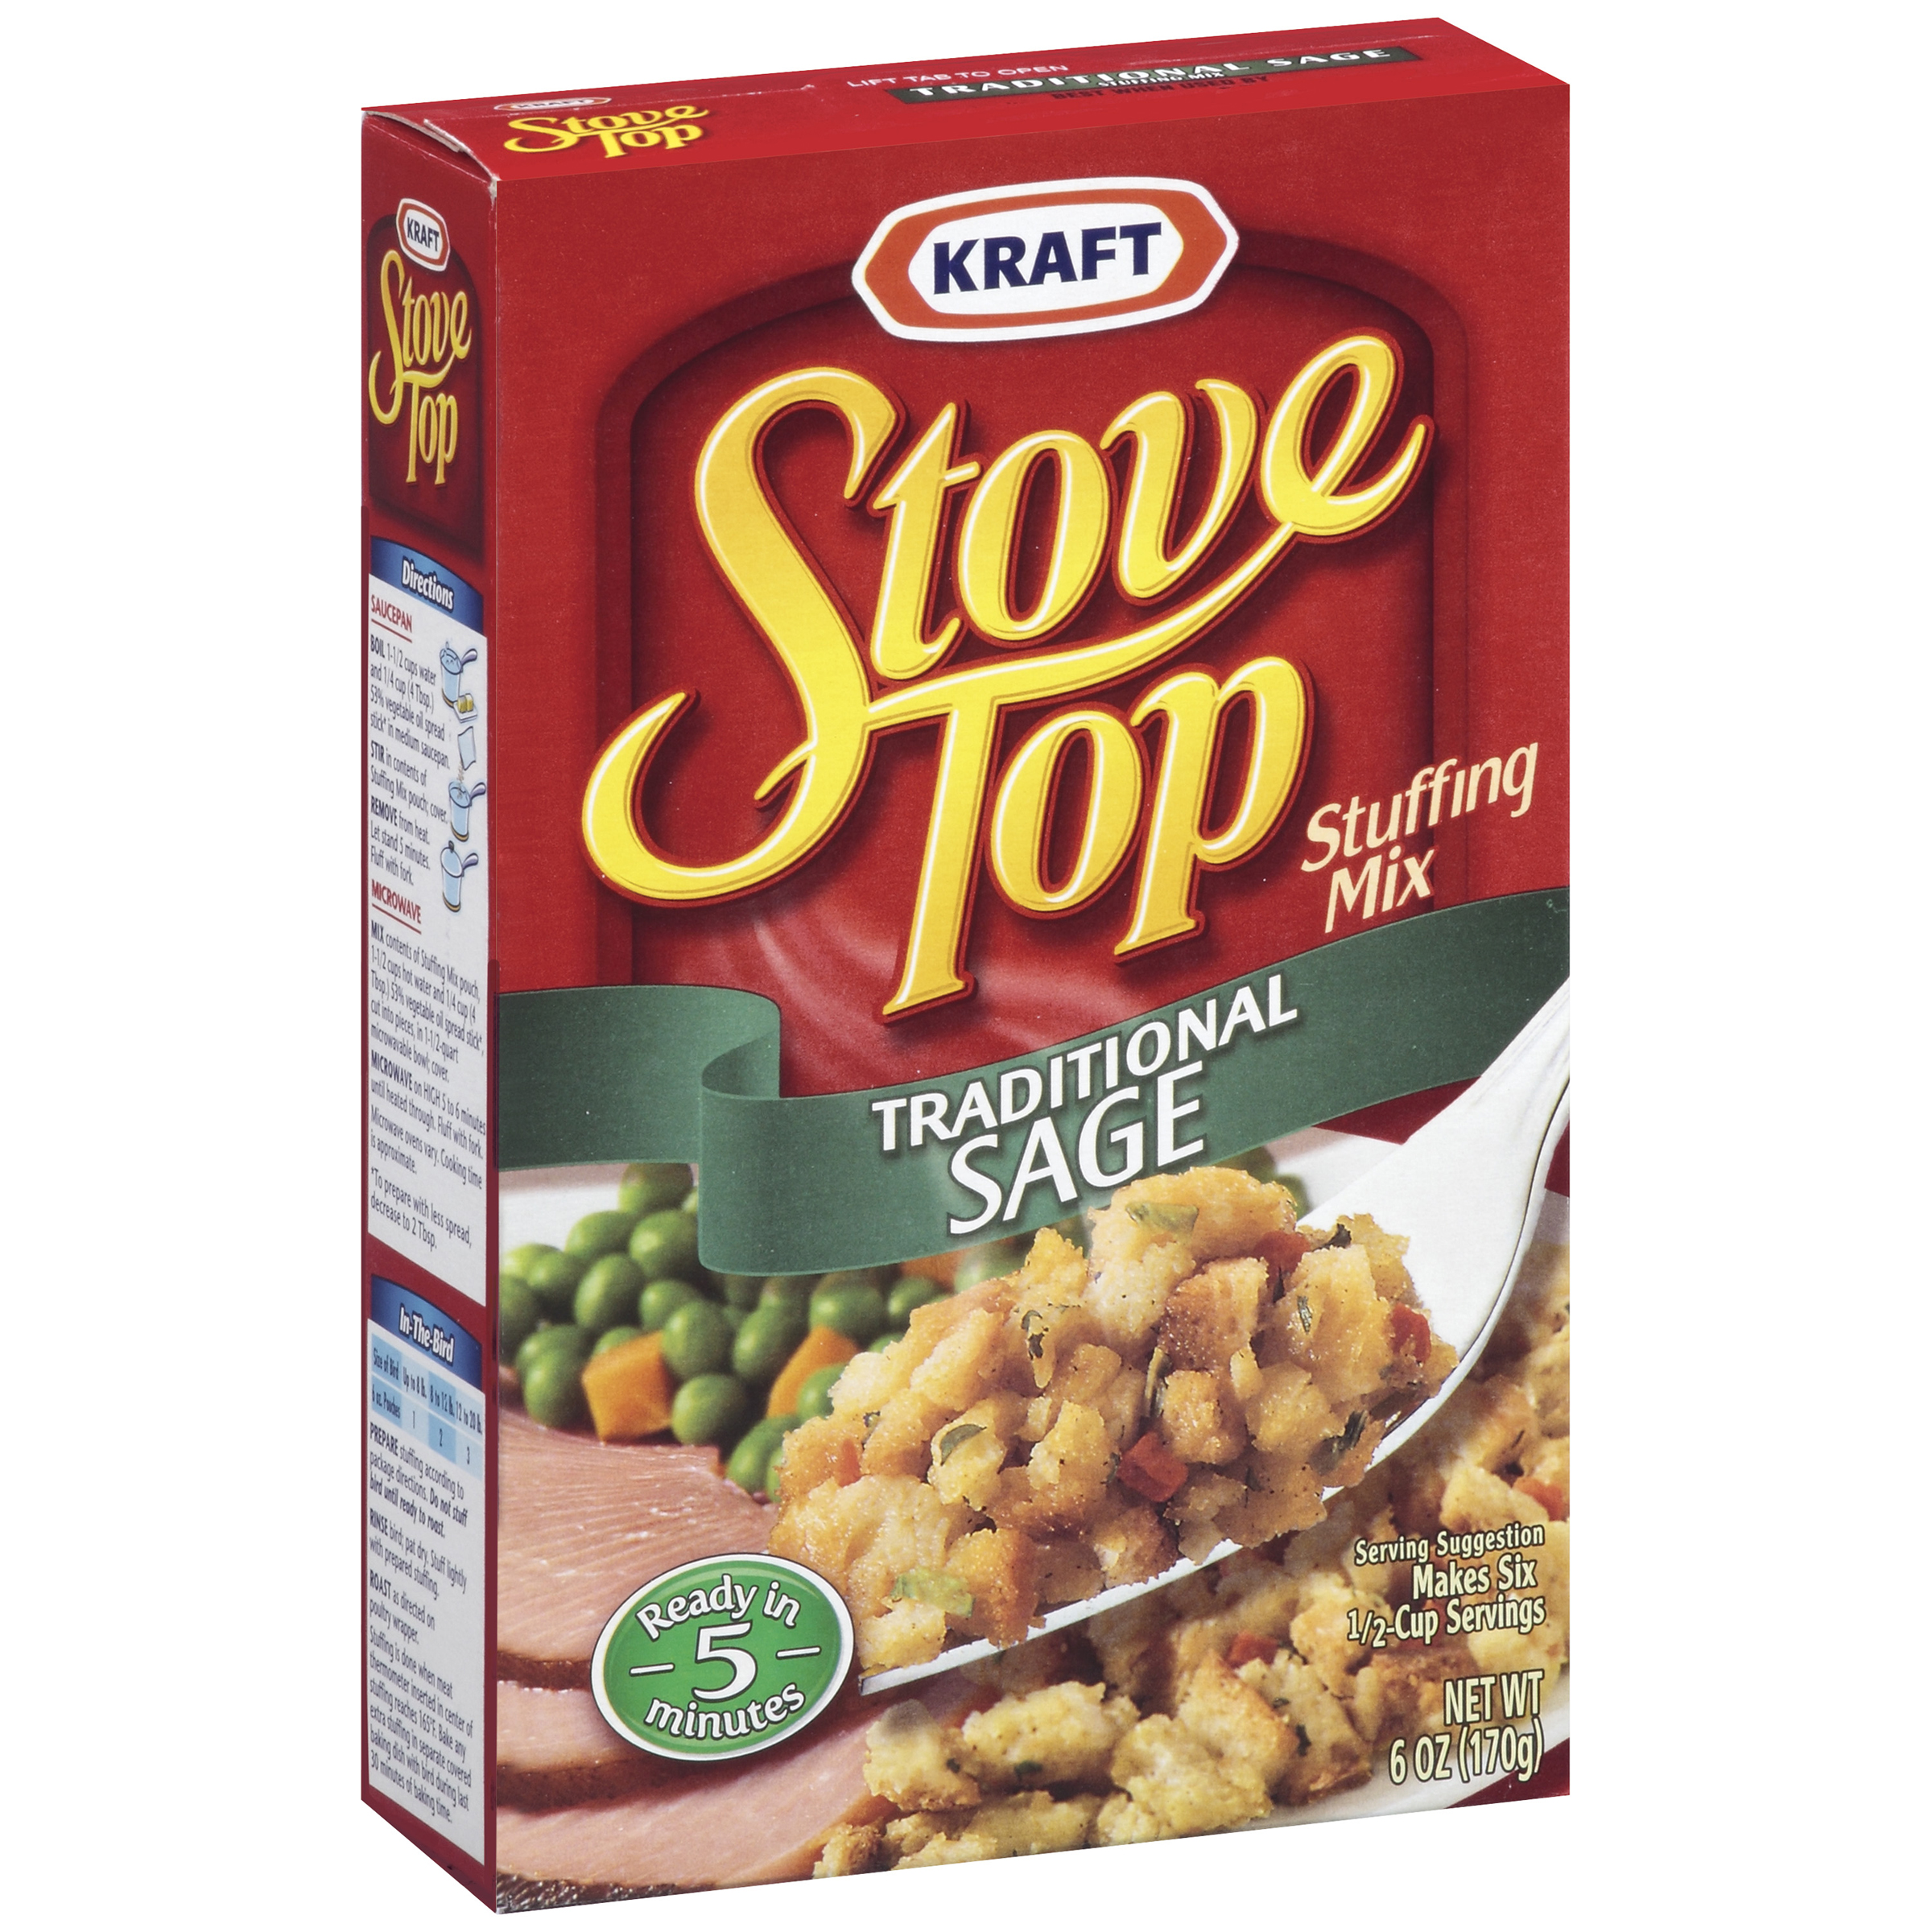 Stove Top Traditional Sage Stuffing Mix, 6 oz